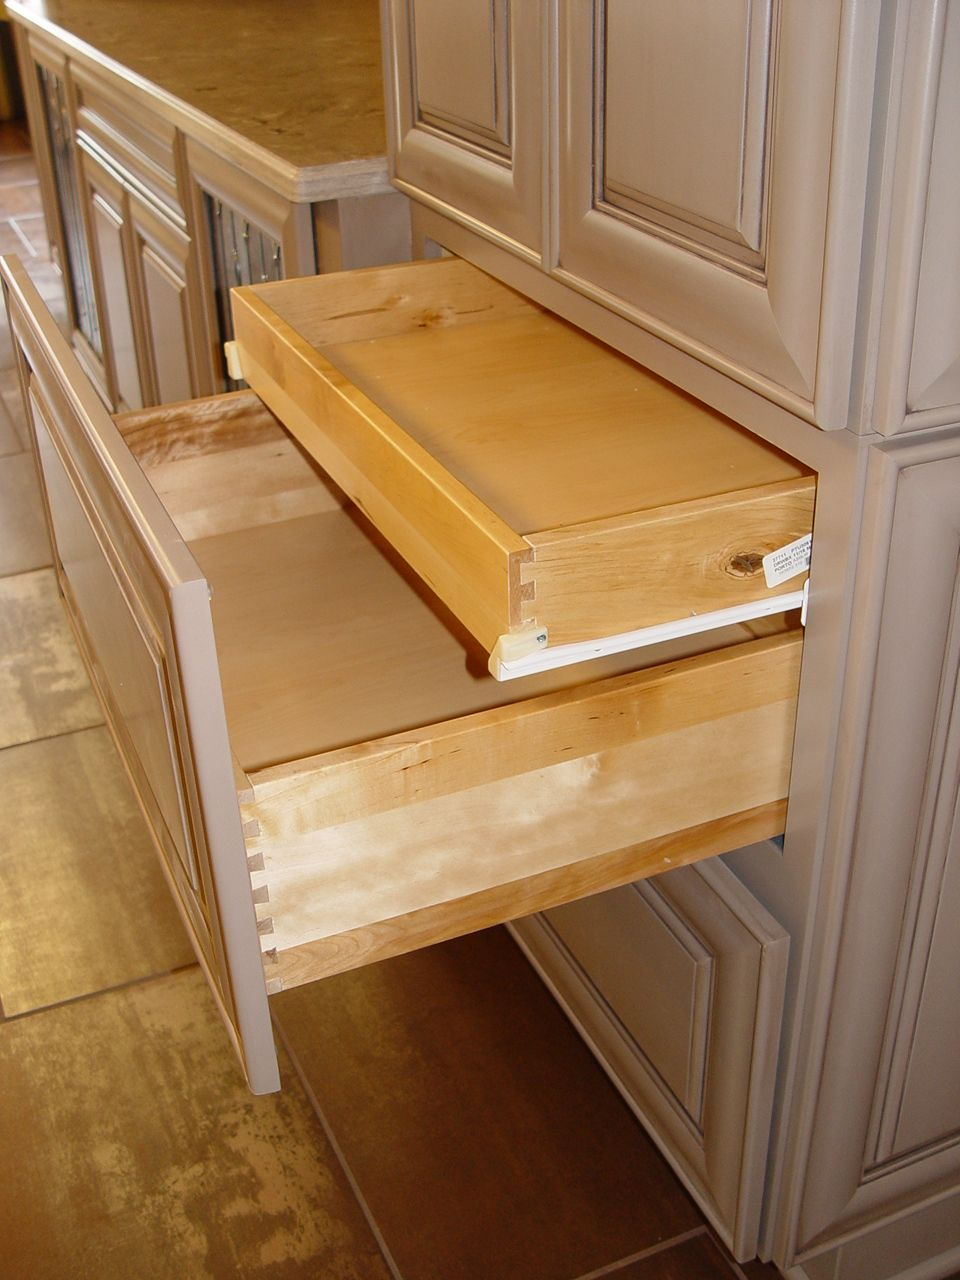 Best Unique Sliding Shelf Can Hold Pots And Pan Covers Or 640 x 480